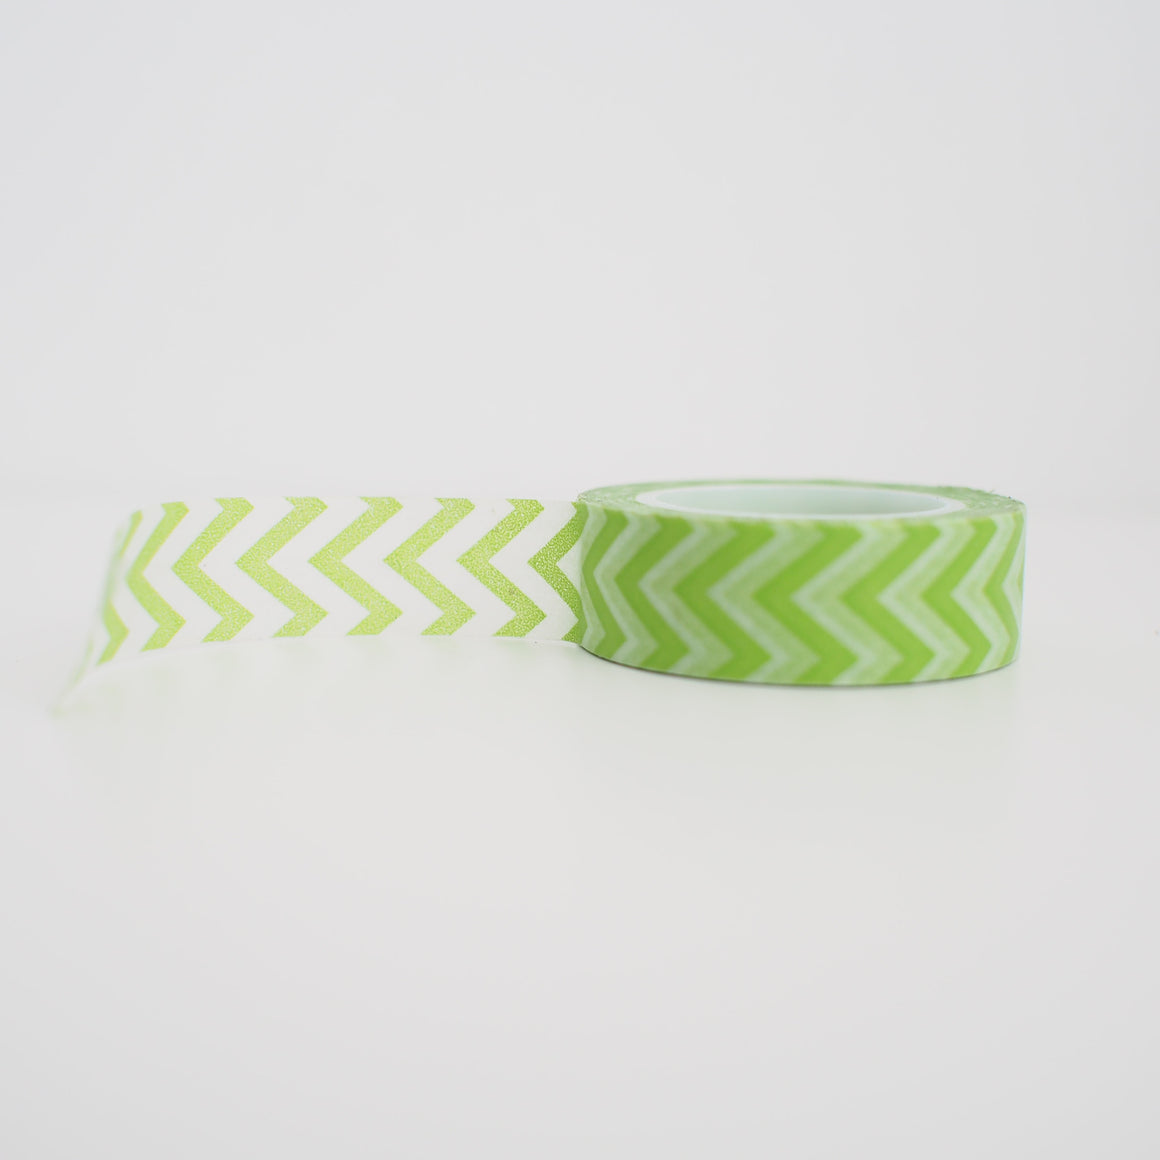 Washi Tape - Green Chevron